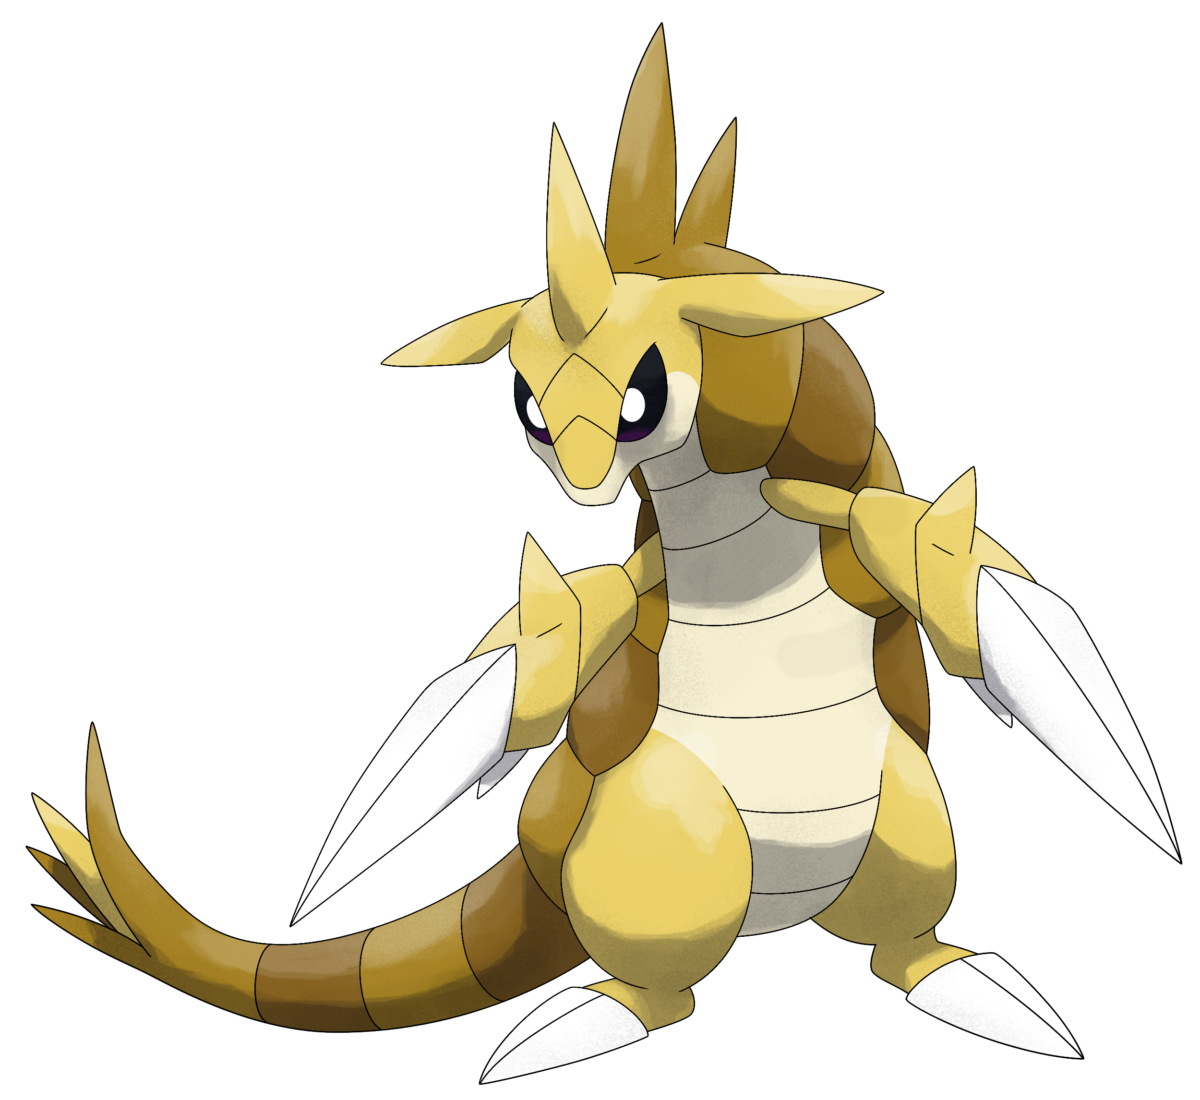 Mega Sandslash by Smiley-Fakemon on DeviantArt